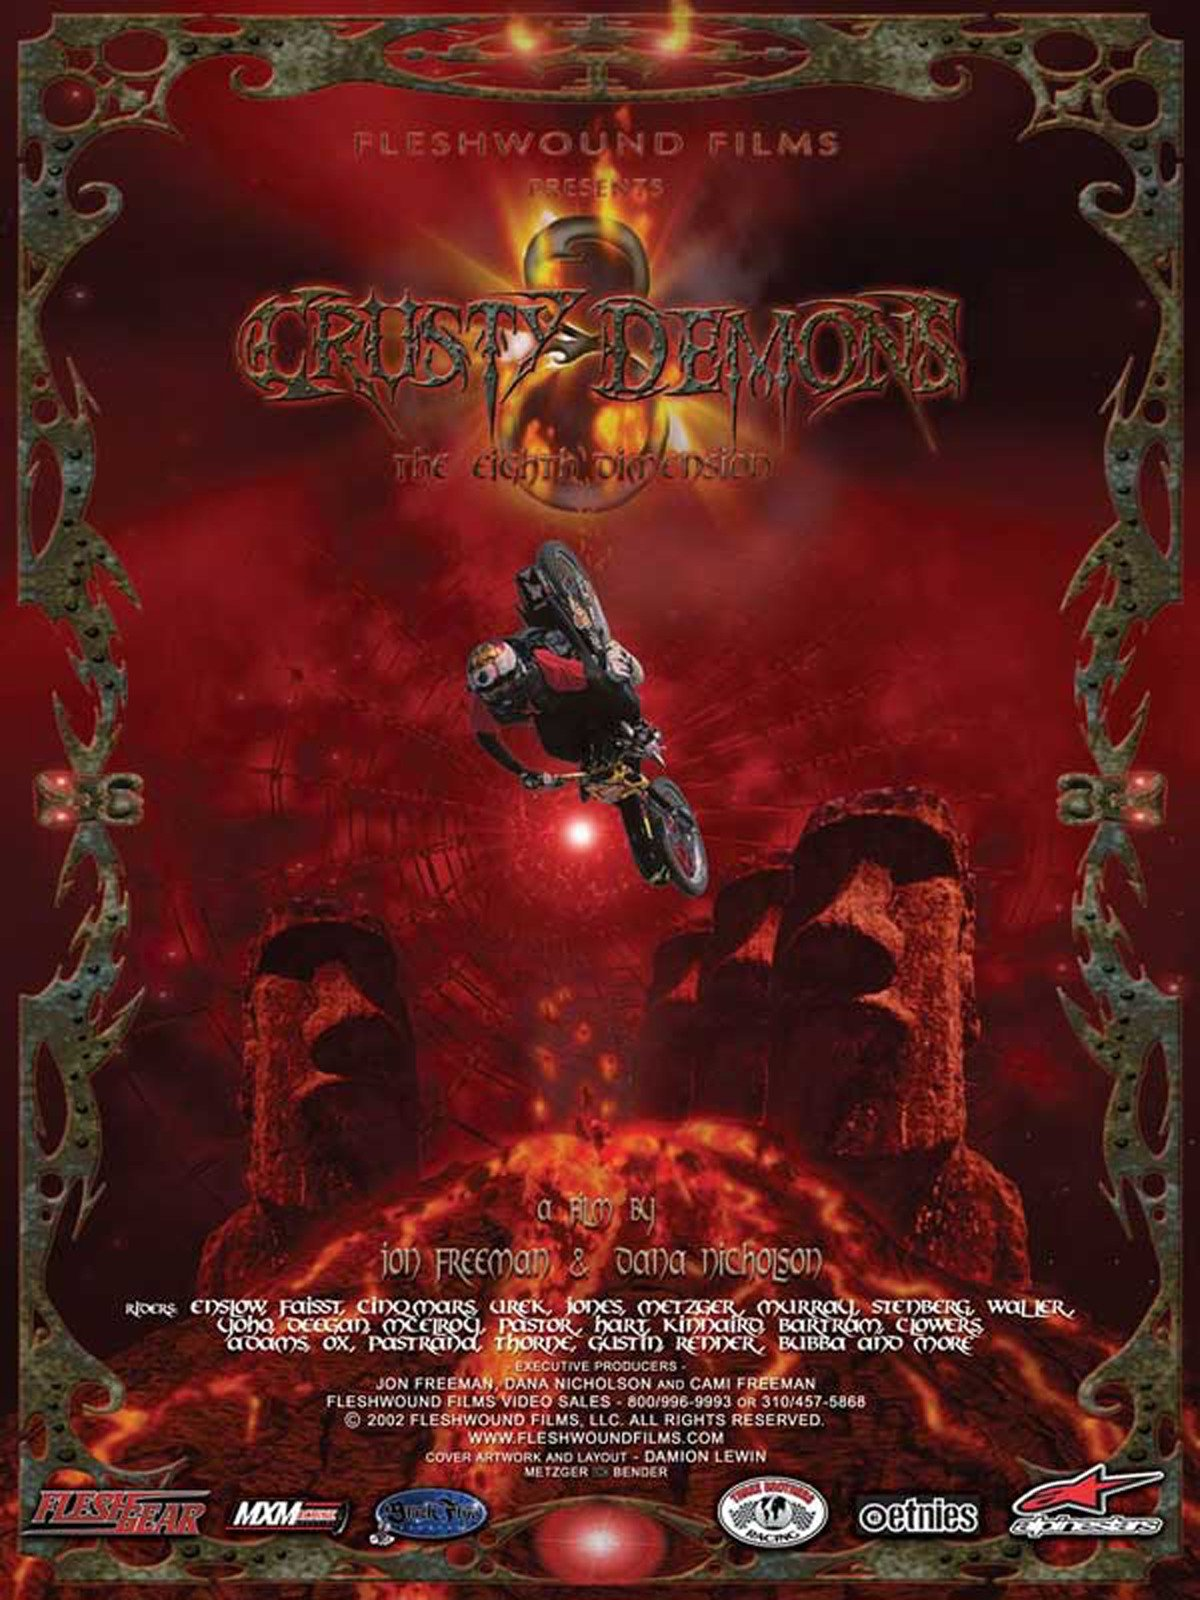 Watch Crusty Demons 8 The 8th Dimension Prime Video